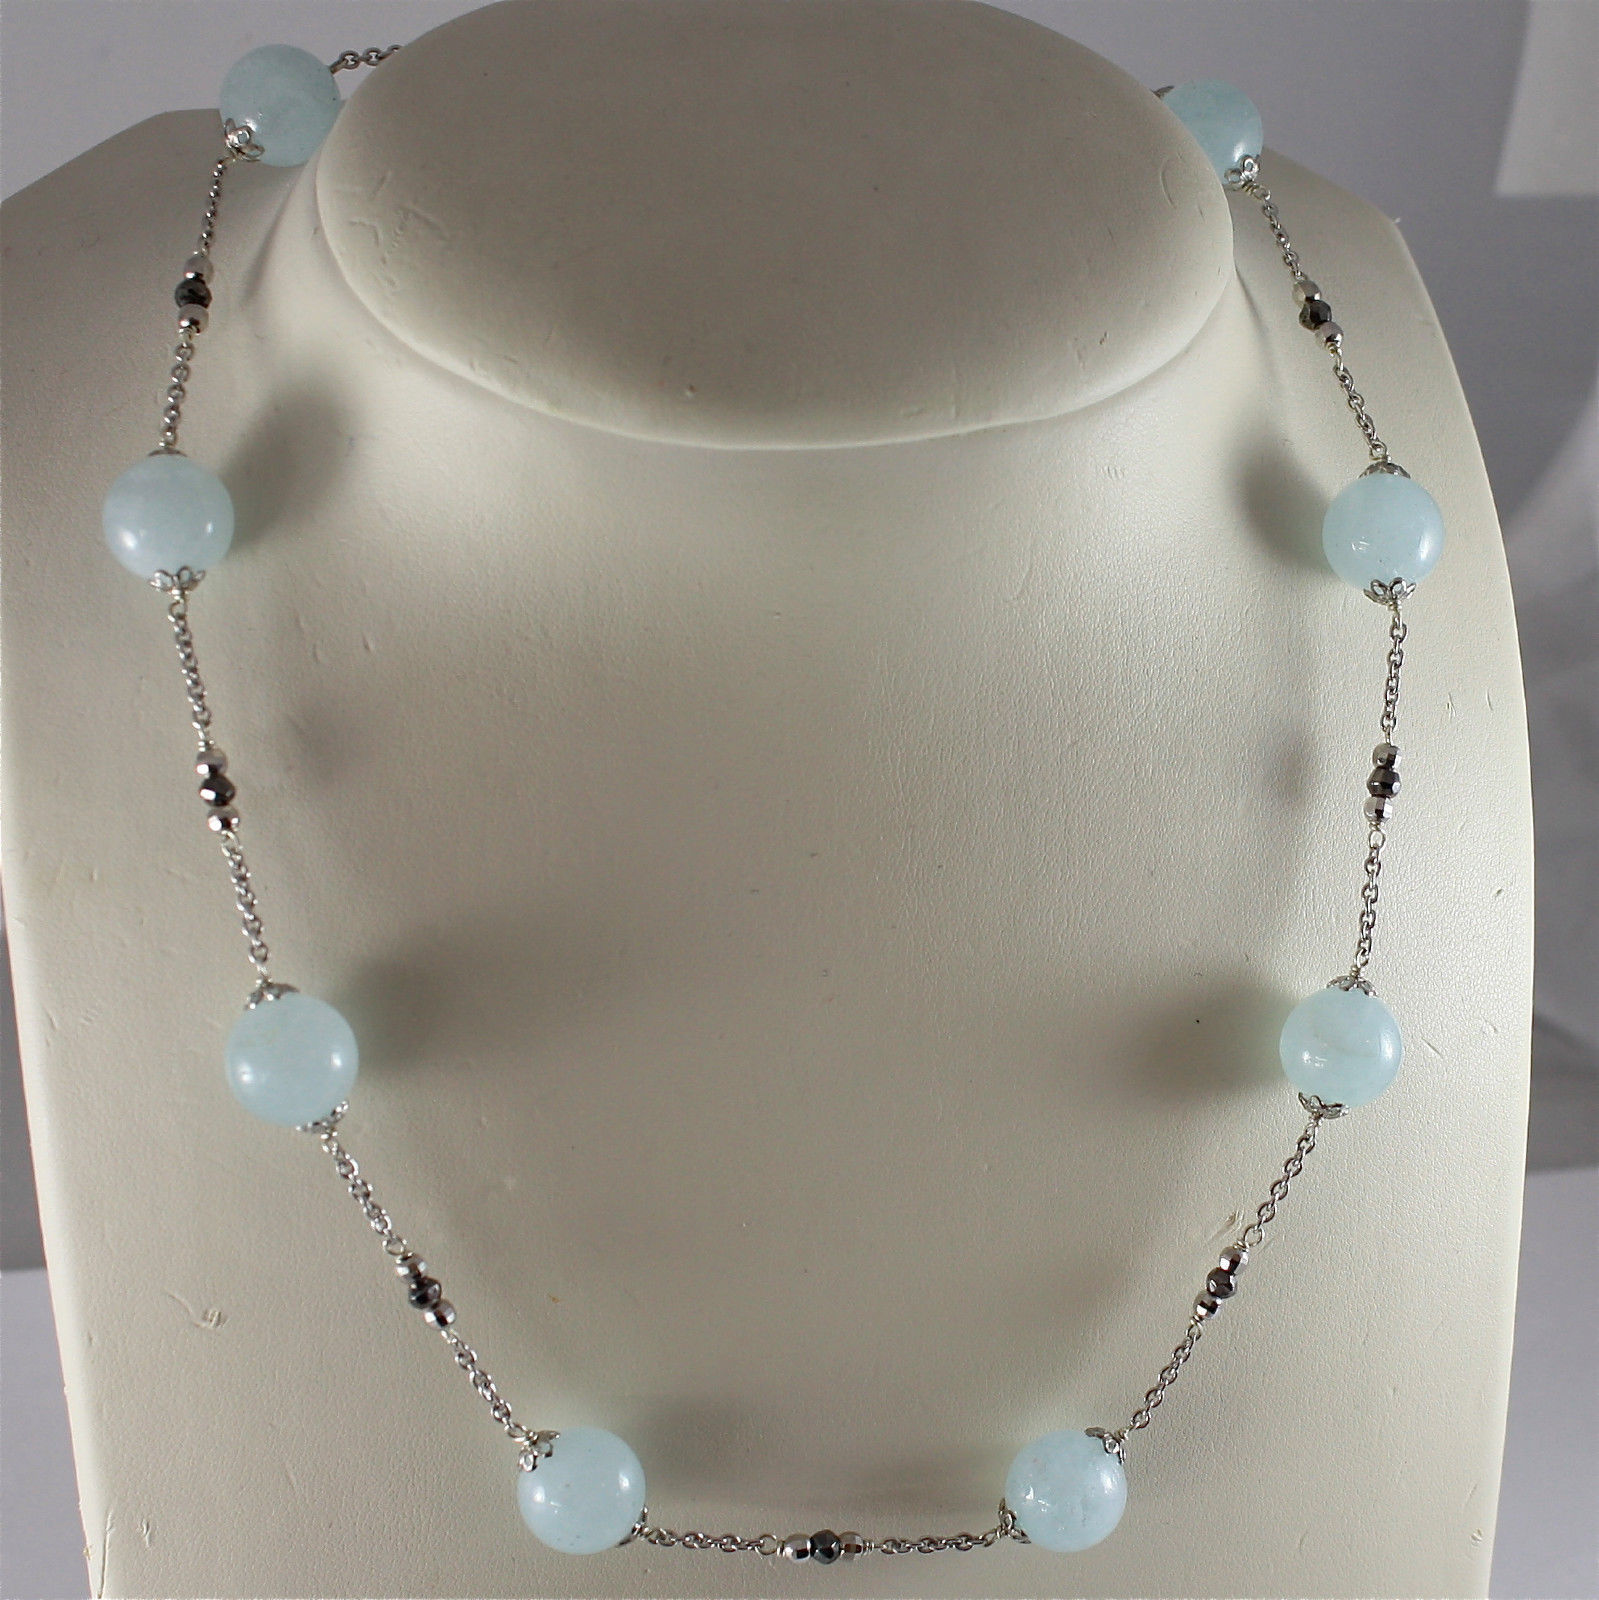 .925 RHODIUM SILVER NECKLACE, WITH NATURAL AQUAMARINE AND PYRITE.